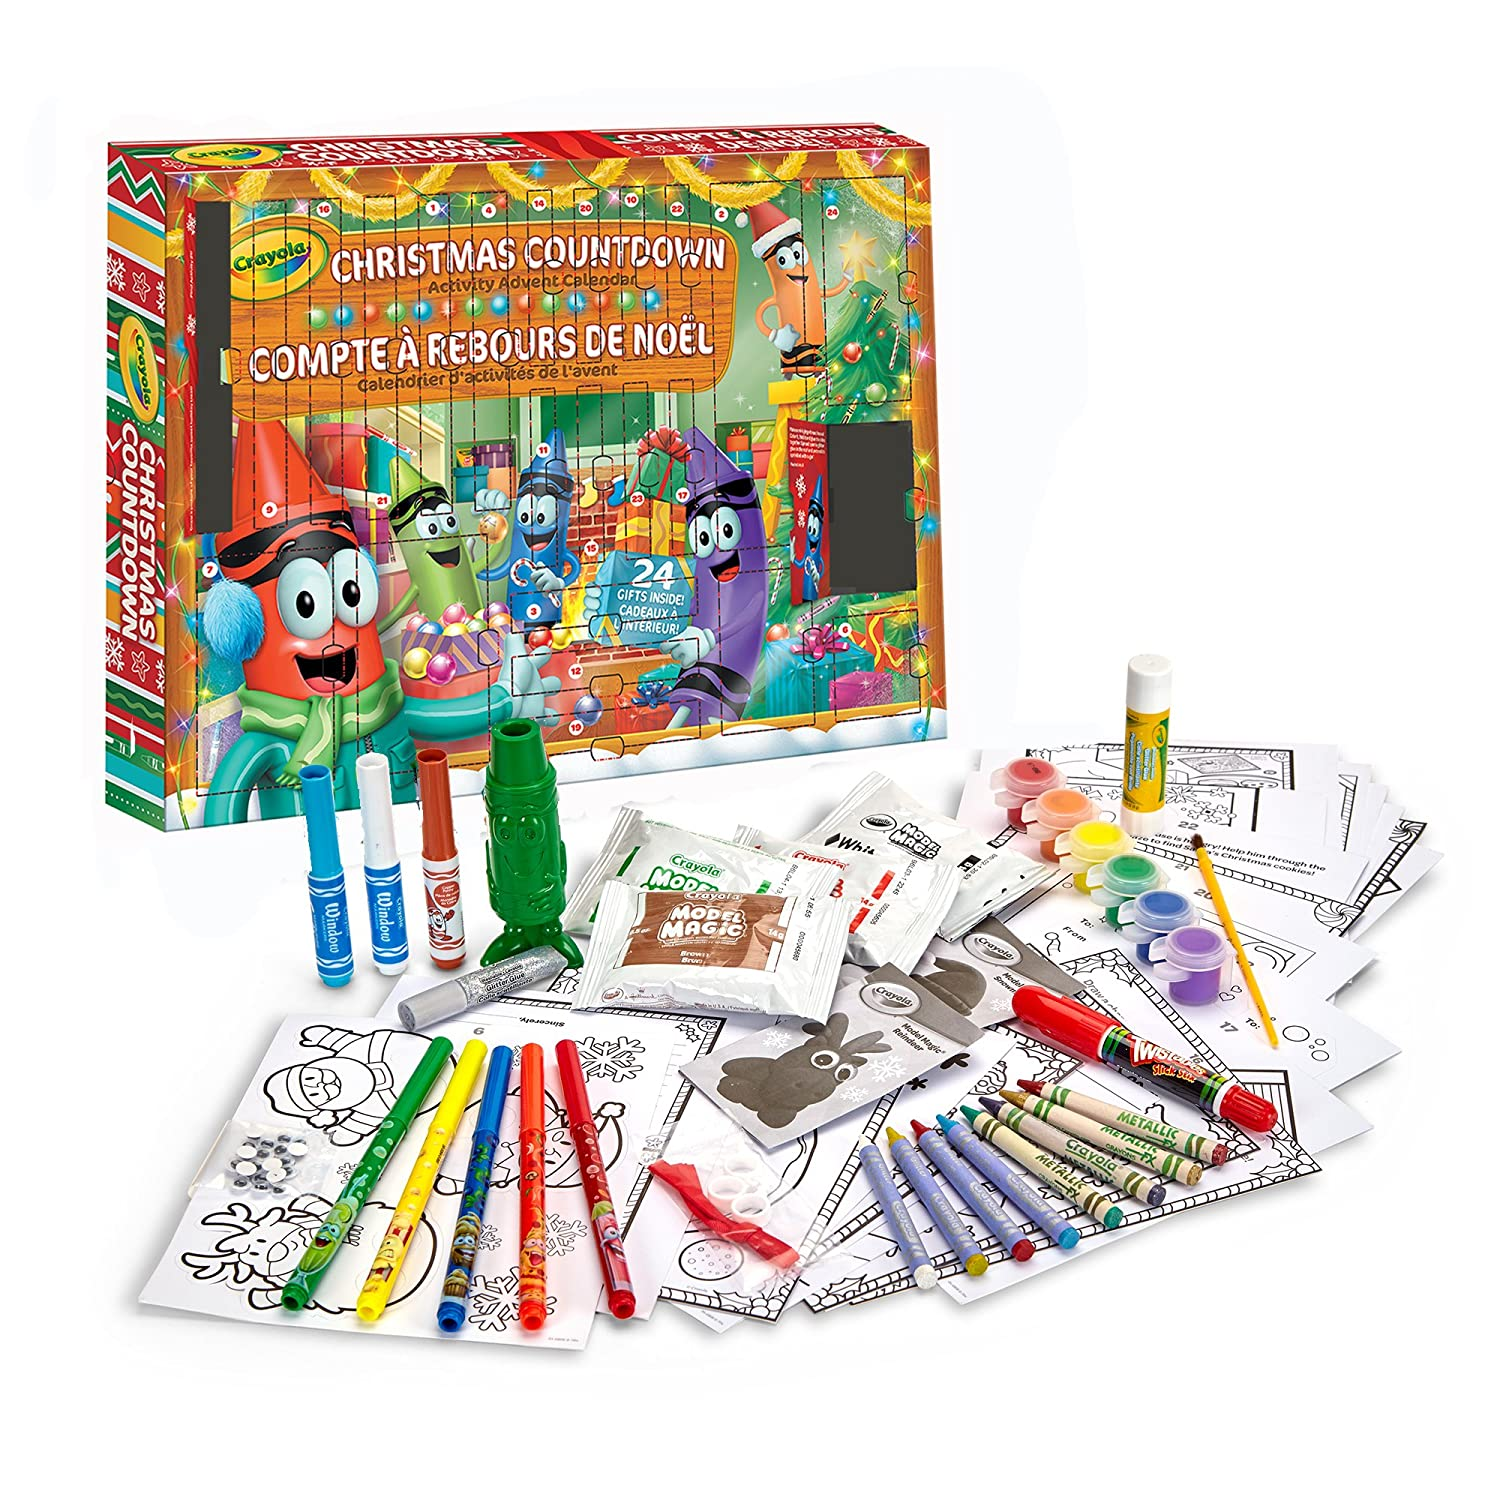 5 Ages 3,4 Easter Gifting Crayola Christmas Countdown Activity Advent Calendar Gift for Boys and Girls 6 and Up Kids Easter Basket Stuffers Arts and Crafts